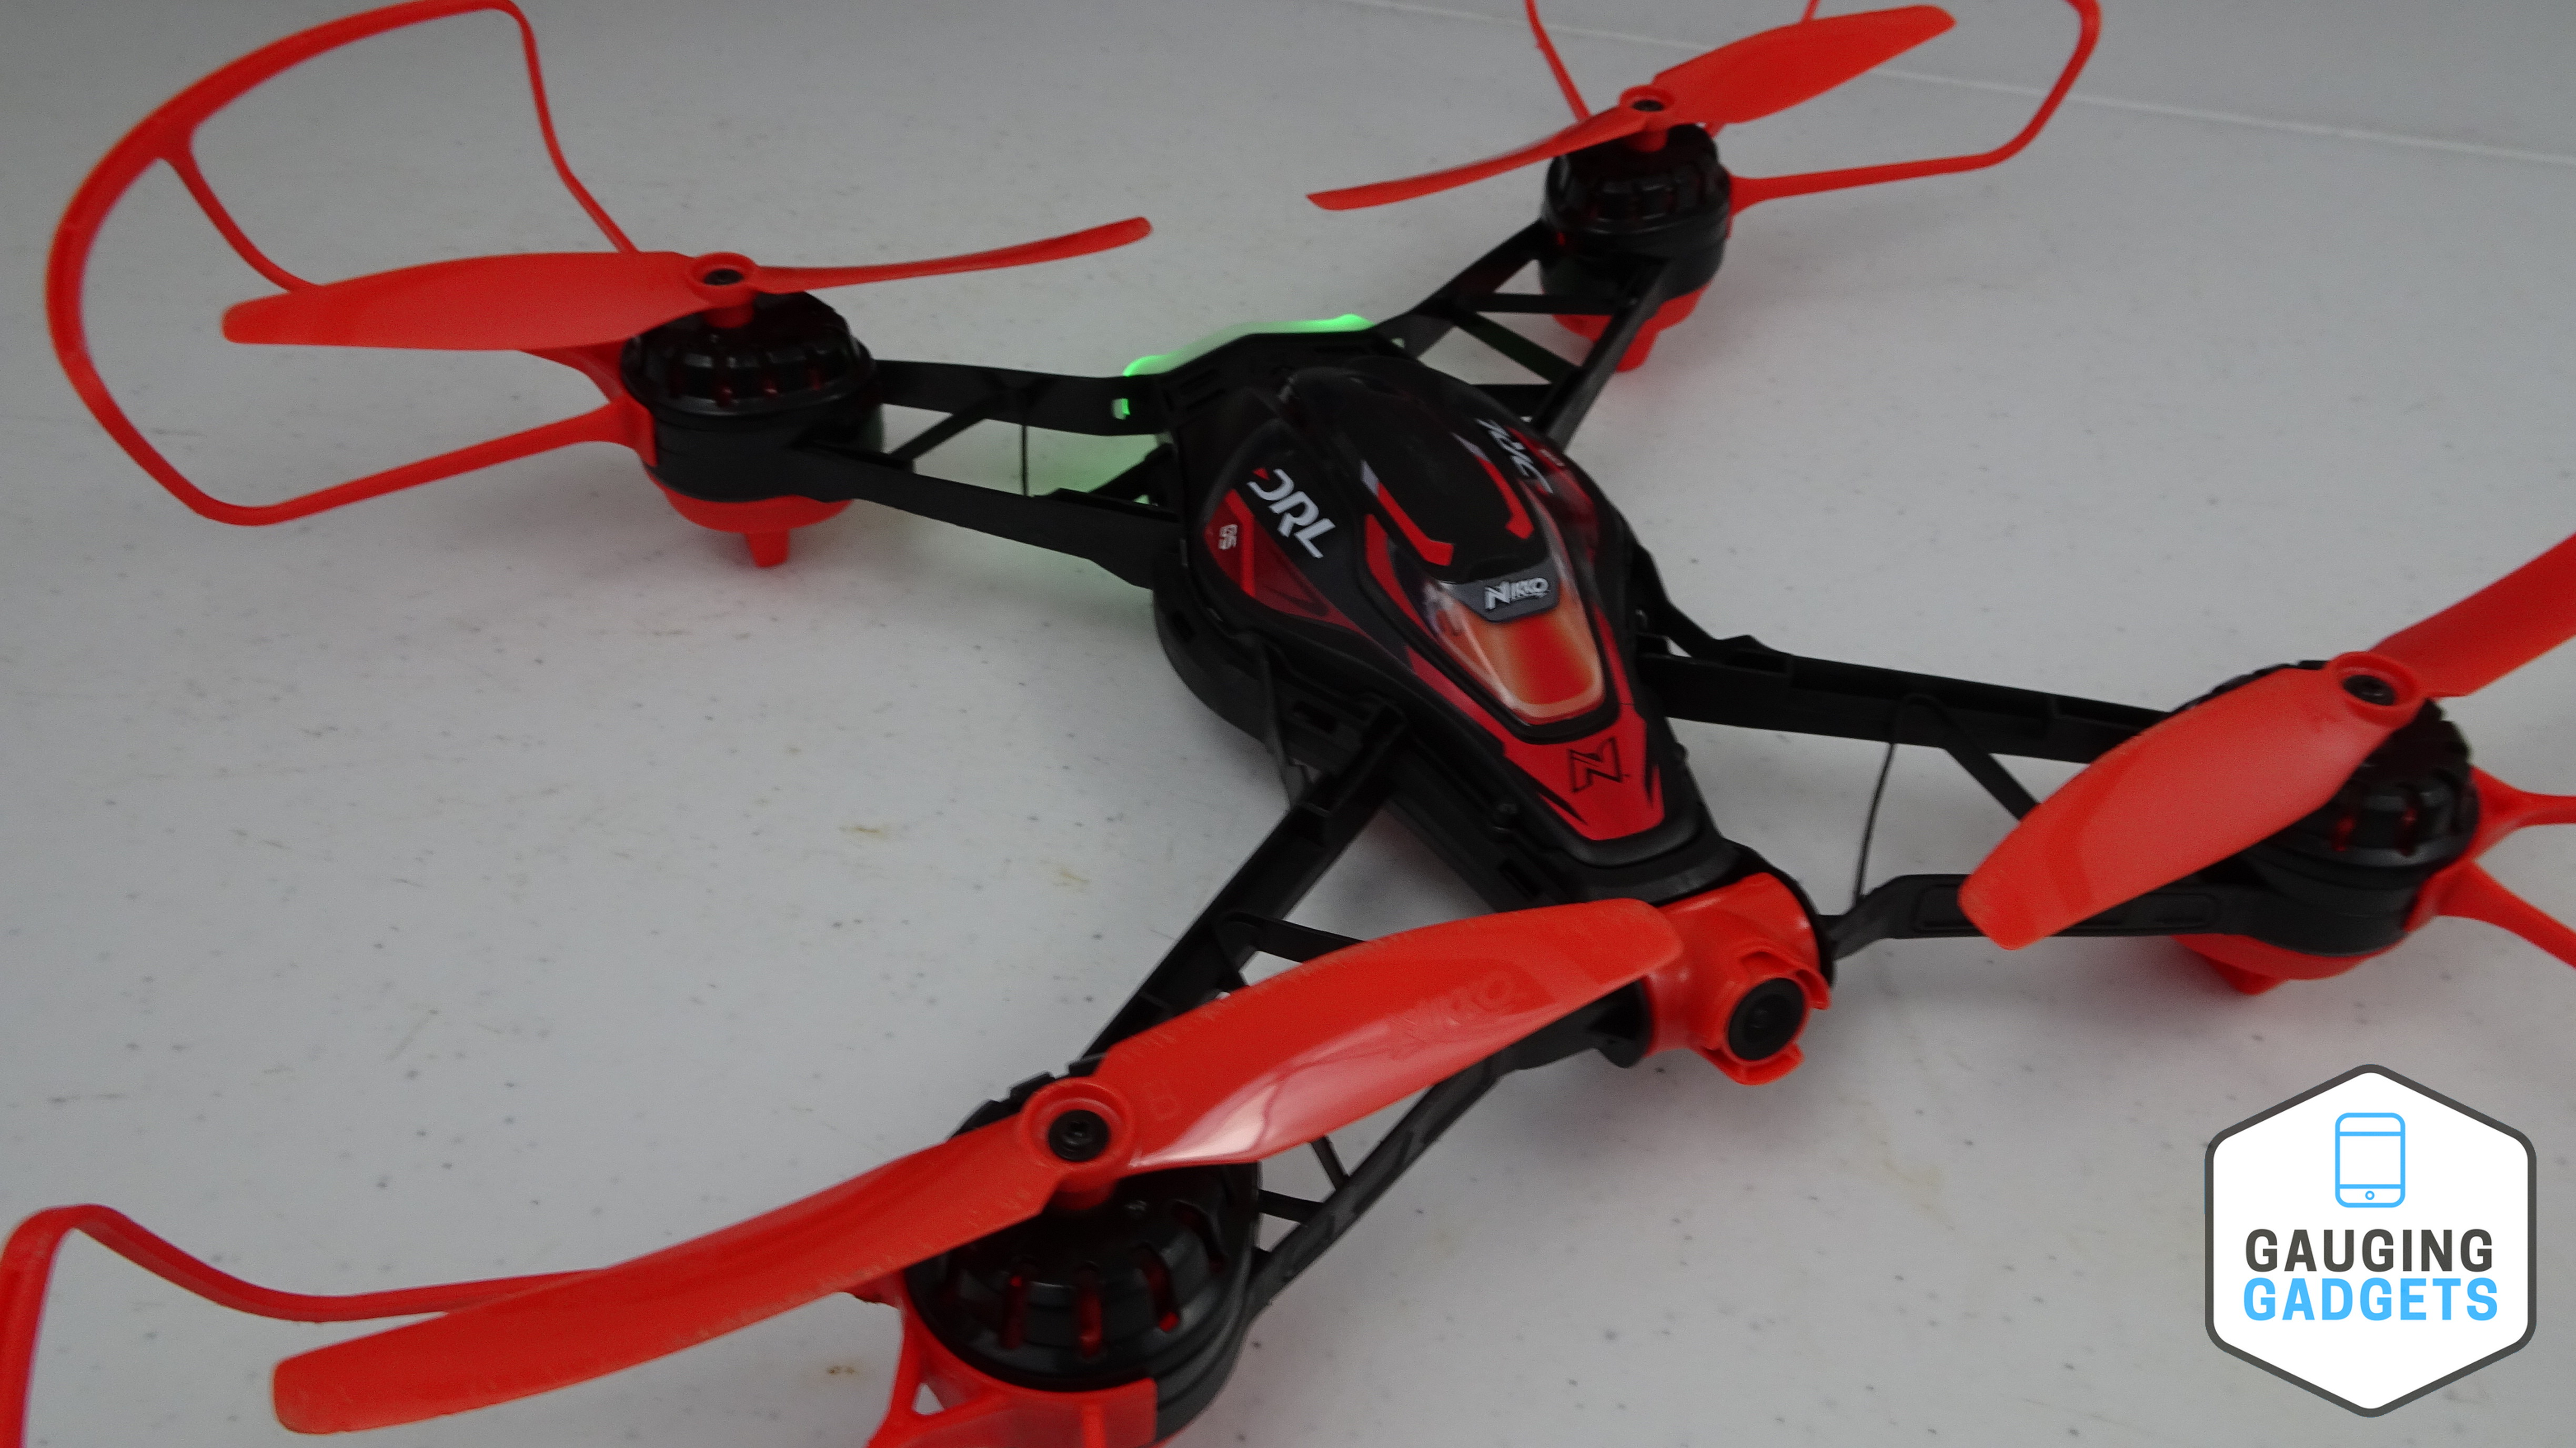 DRL Nikko Air Race Vision 220 Drone Review